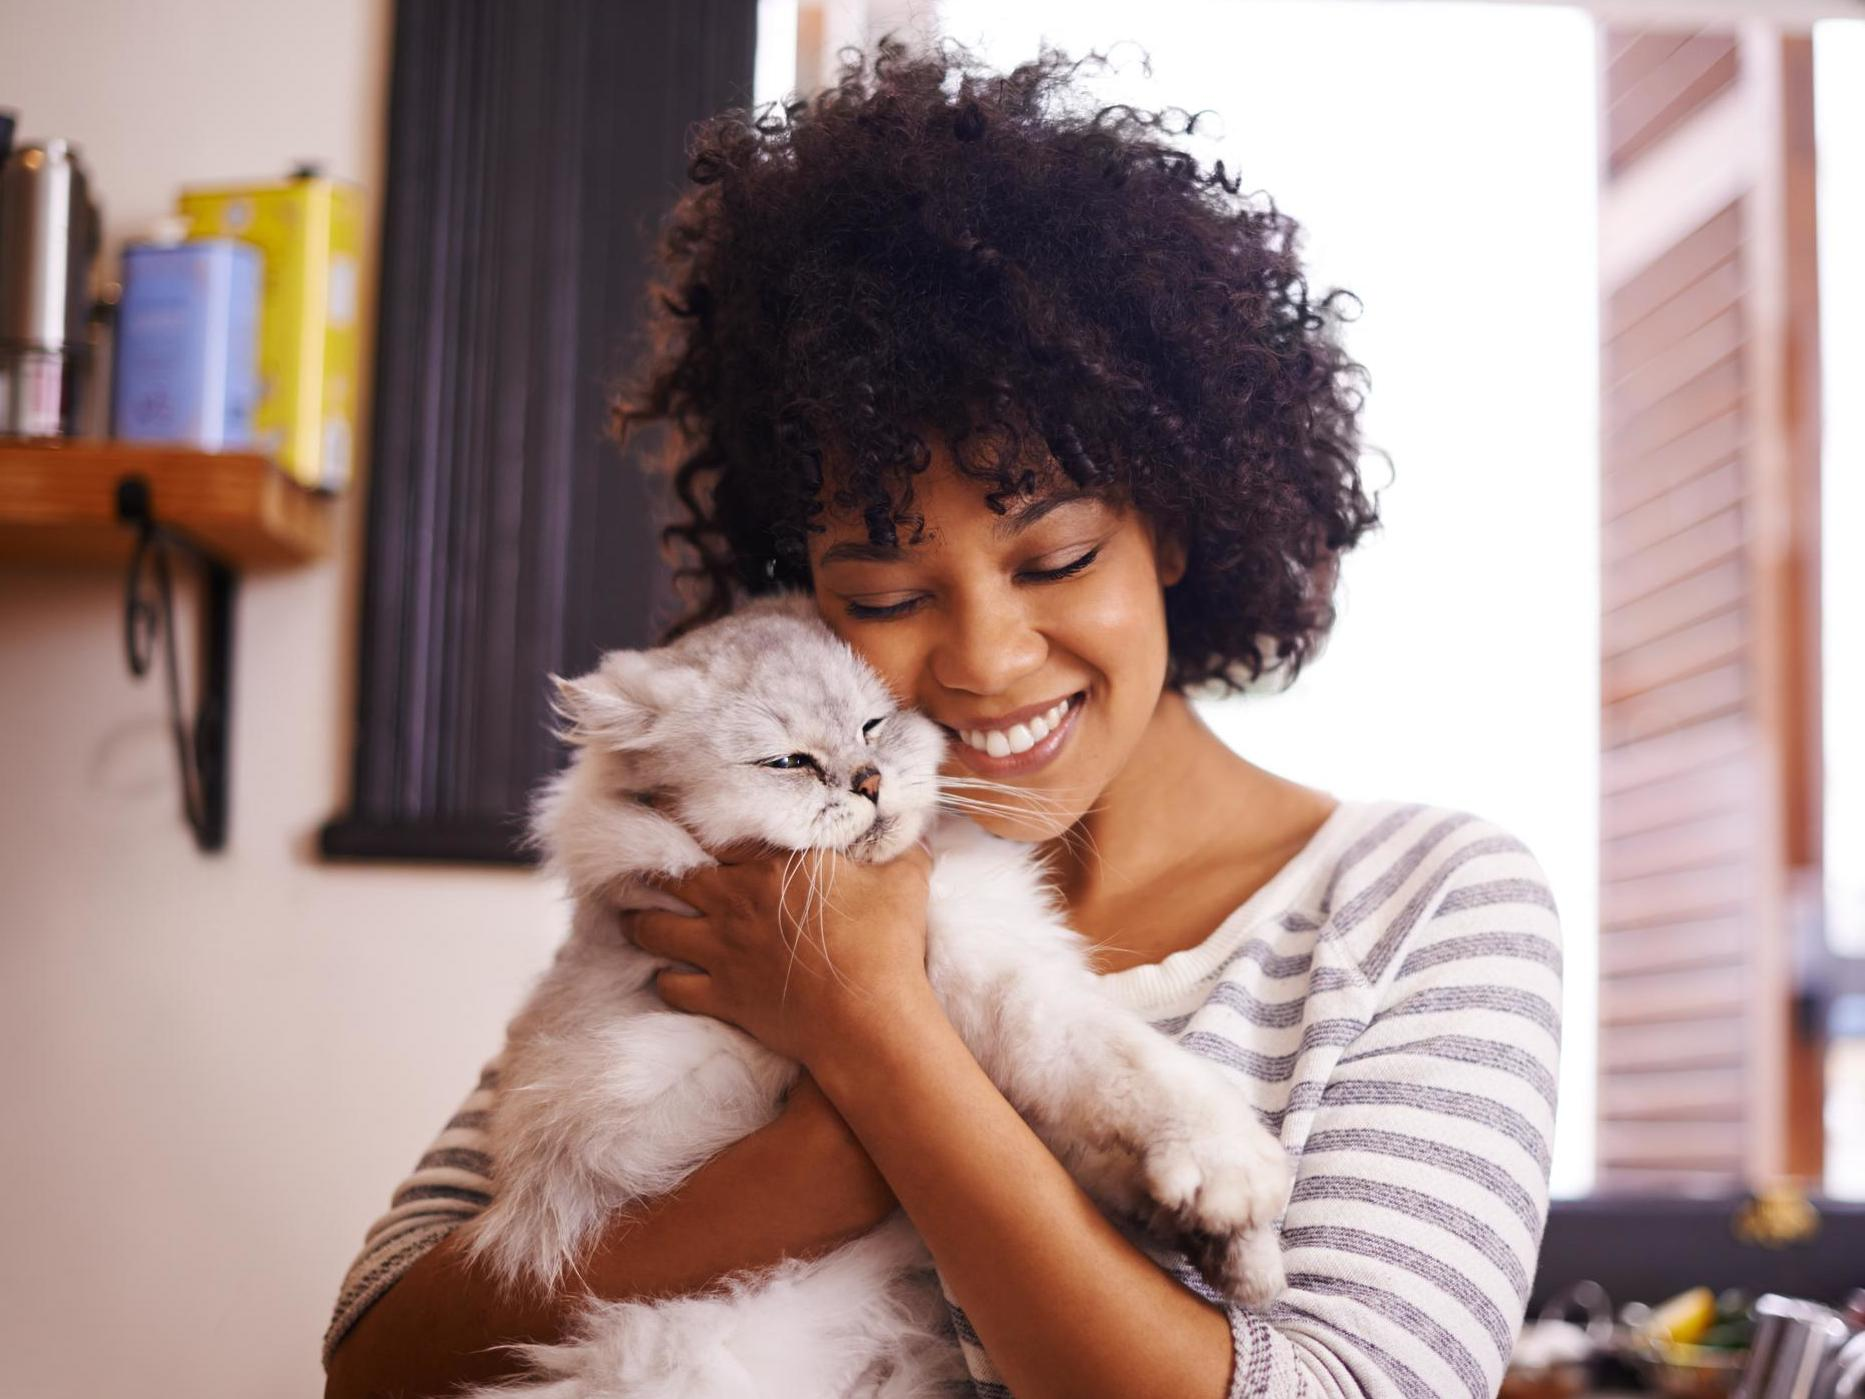 Cats are just as loyal to their owners as dogs, study finds